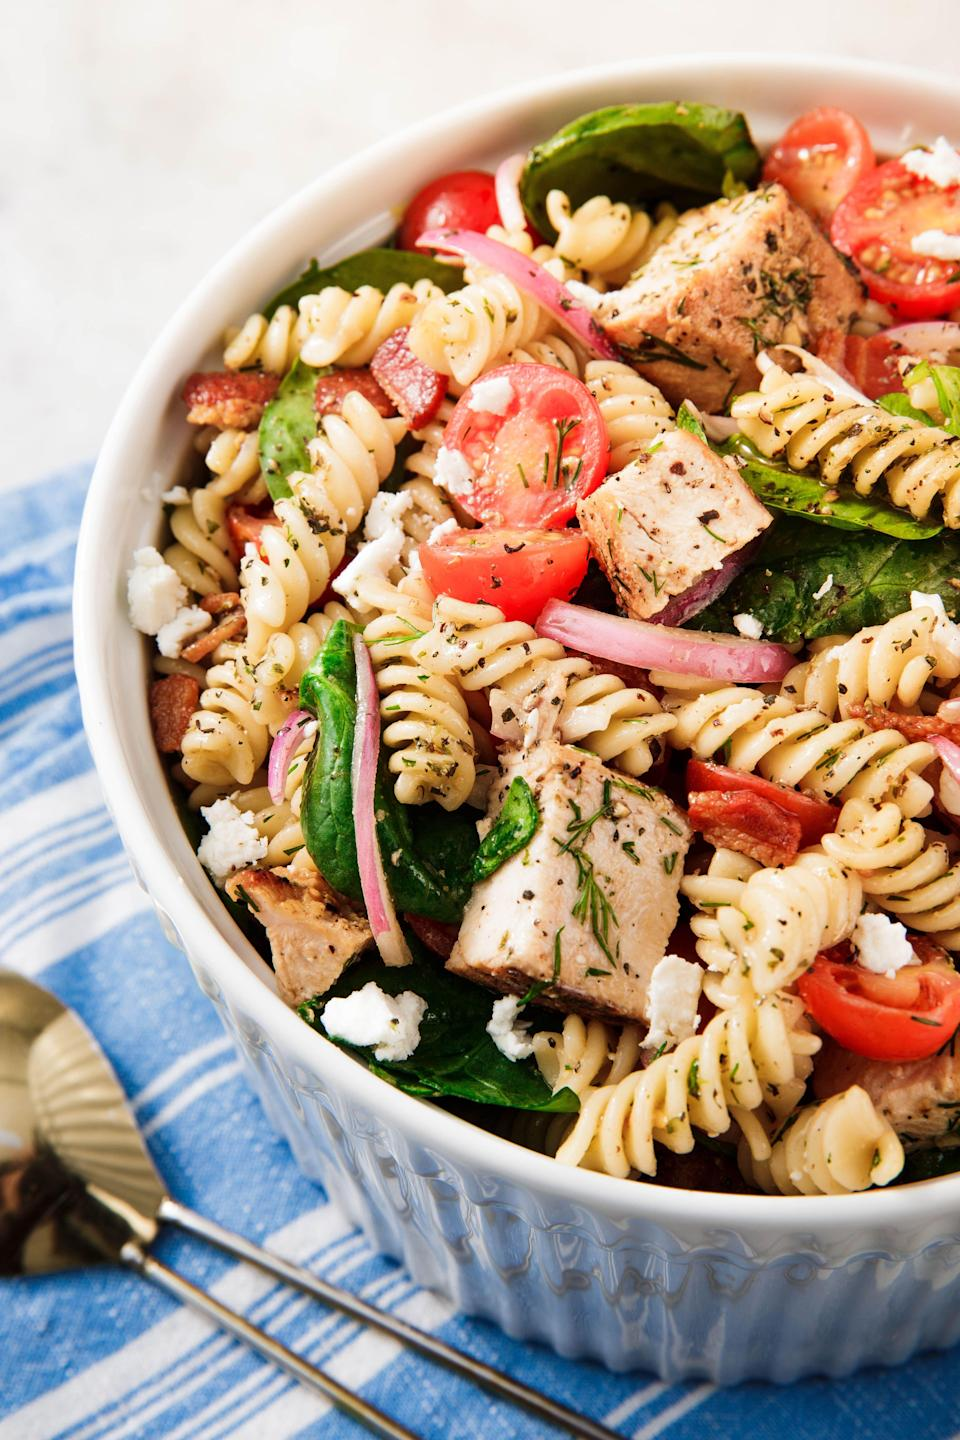 """<p>Nothing says independence like eating on the go. Bring the party with you with these portable recipes and picnic ideas. We've got sandwiches, salads, skewers, and more...plus a few desserts to round things out. Need more inspiration? </p><p>Check out all of our <a href=""""http://www.delish.com/4th-july-recipes/"""" rel=""""nofollow noopener"""" target=""""_blank"""" data-ylk=""""slk:Independence Day"""" class=""""link rapid-noclick-resp"""">Independence Day</a> ideas and our <a href=""""http://www.delish.com/holiday-recipes/g1434/healthy-july-fourth-desserts/"""" rel=""""nofollow noopener"""" target=""""_blank"""" data-ylk=""""slk:Fourth of July Desserts"""" class=""""link rapid-noclick-resp"""">Fourth of July Desserts</a>.</p>"""